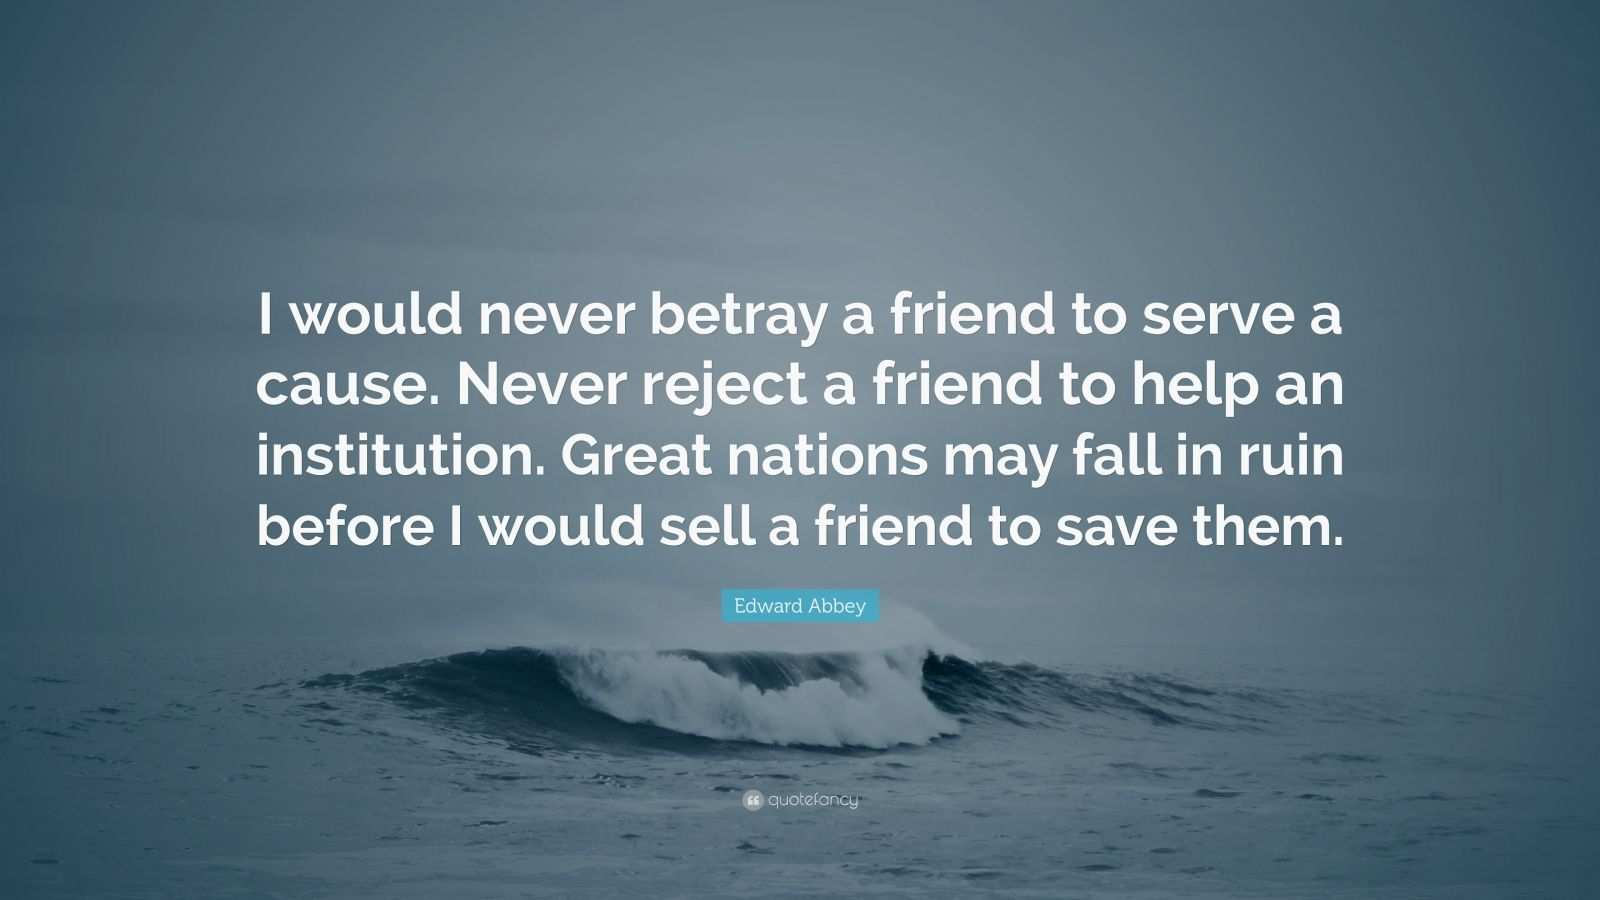 """Edward Abbey Quote: """"I would never betray a friend to serve a cause. Never reject a friend to help an institution. Great nations may fall in ruin before I would sell a friend to save them."""""""